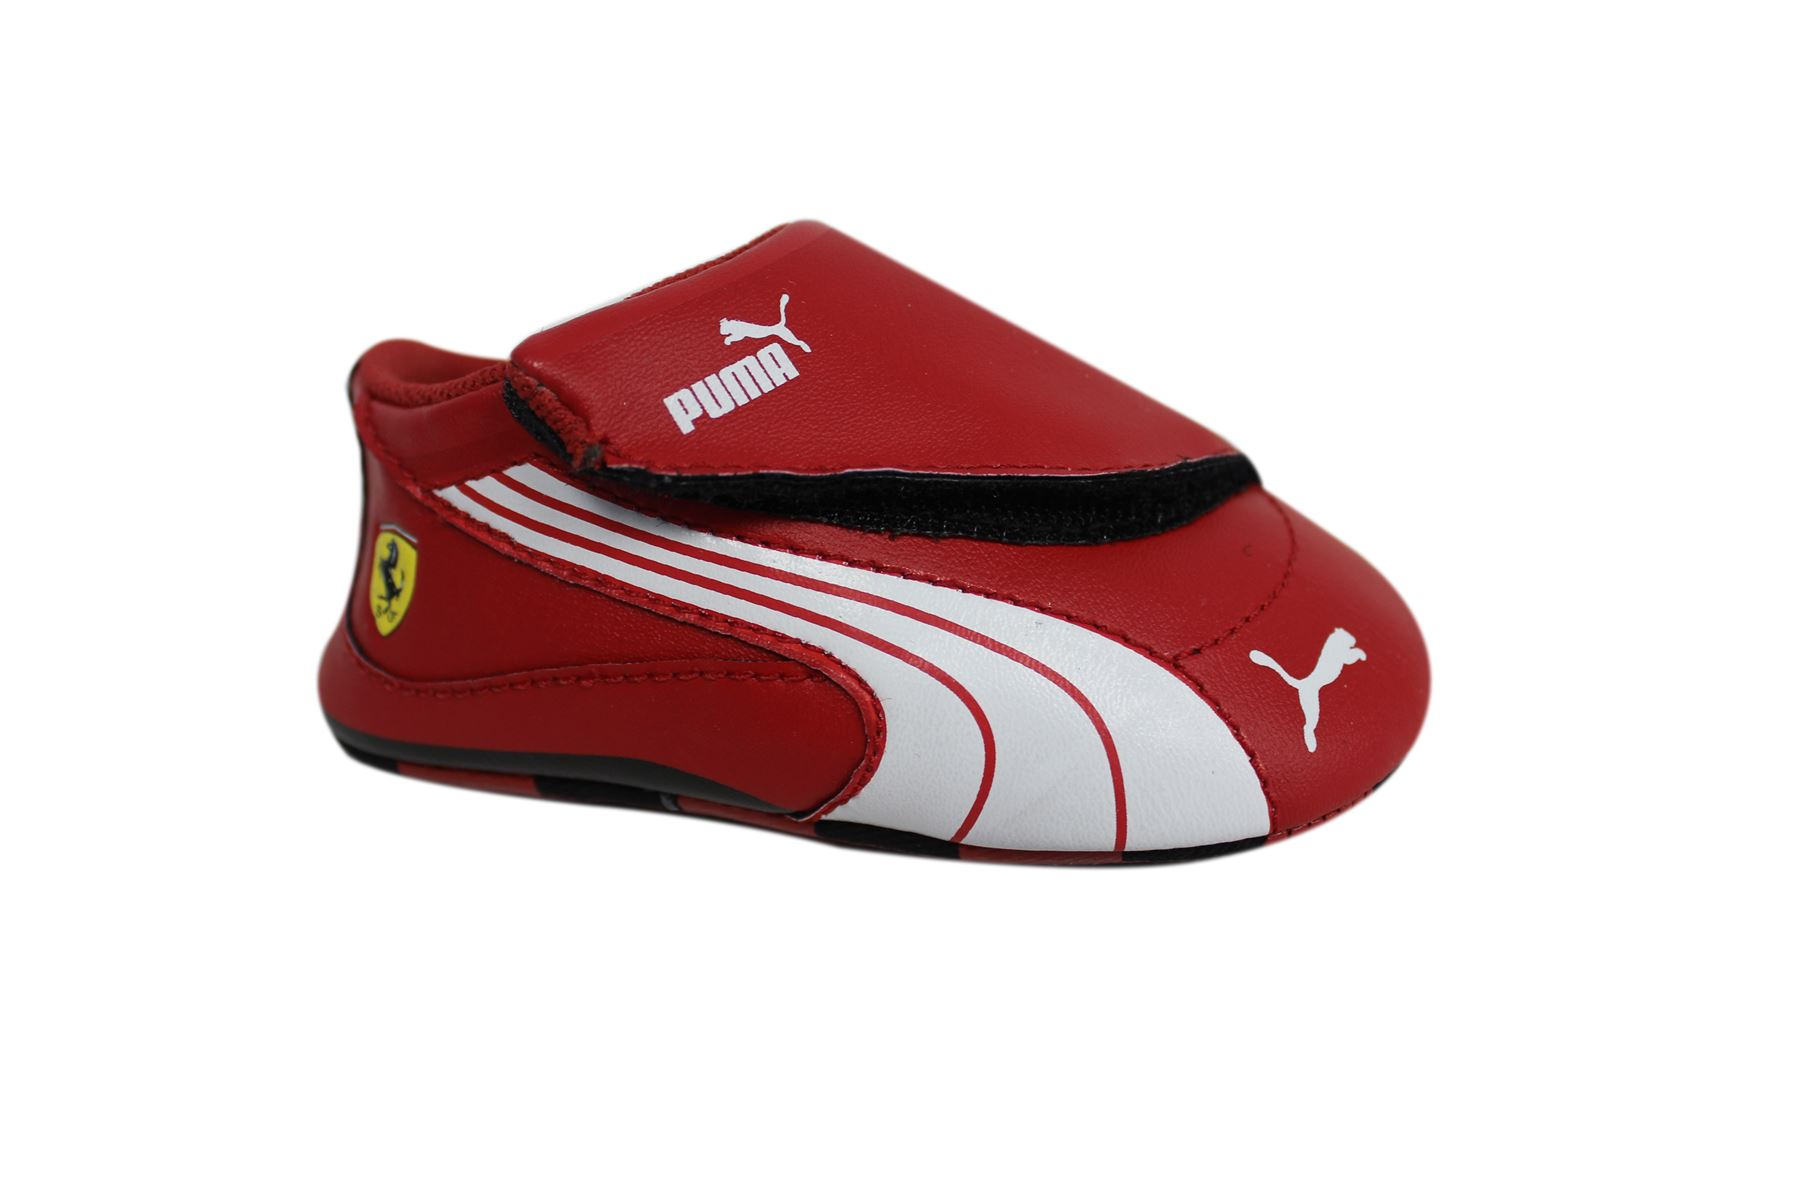 Details about Puma Drift Cat 4 L SF Crib Soft Sole Red Synthetic Baby Shoes 303976 06 EE15